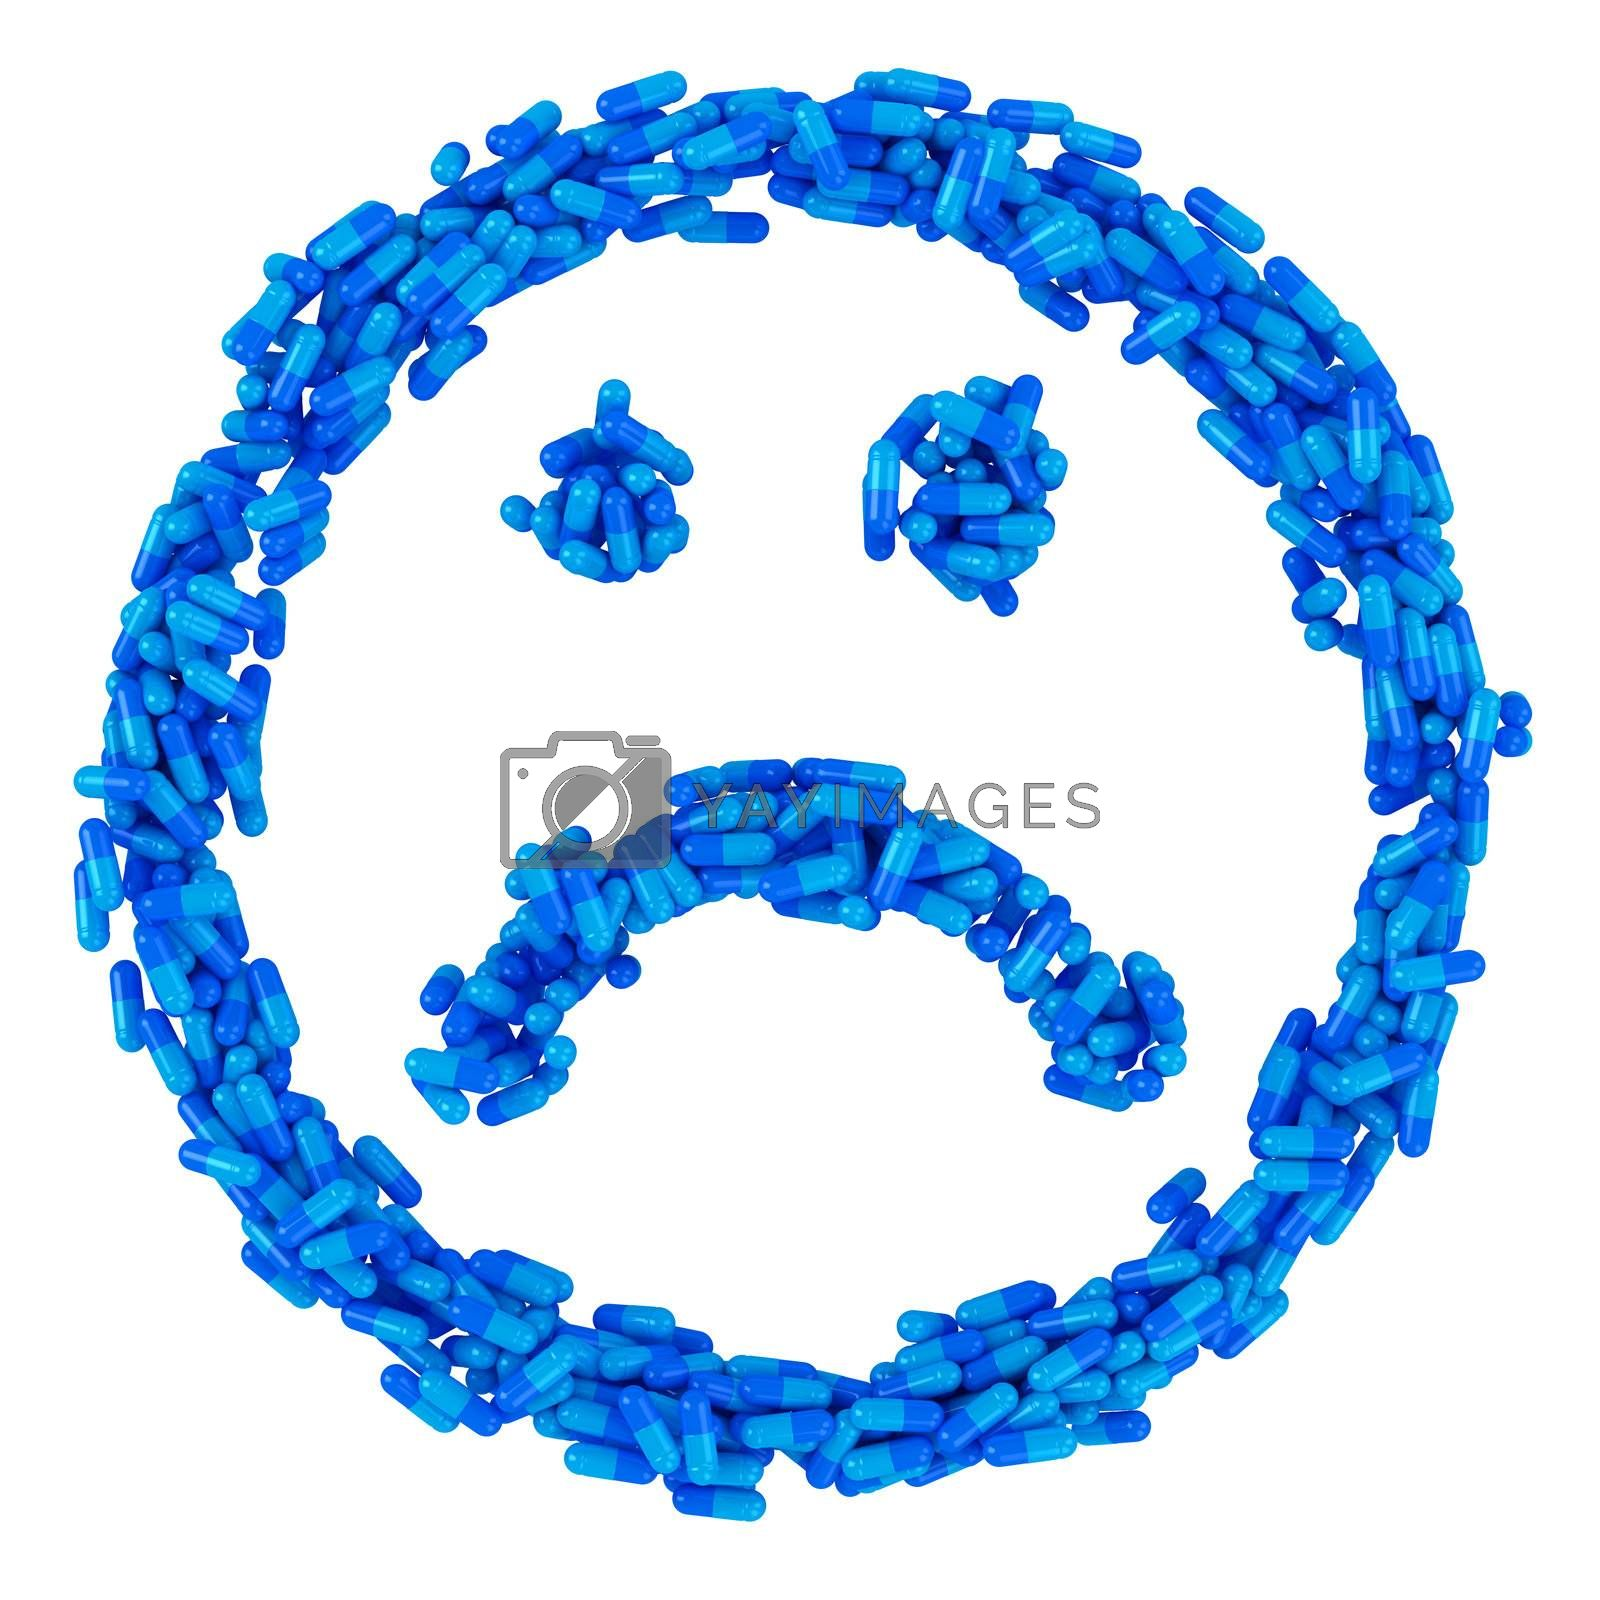 Sad smile made from many blue pills, sickness concept